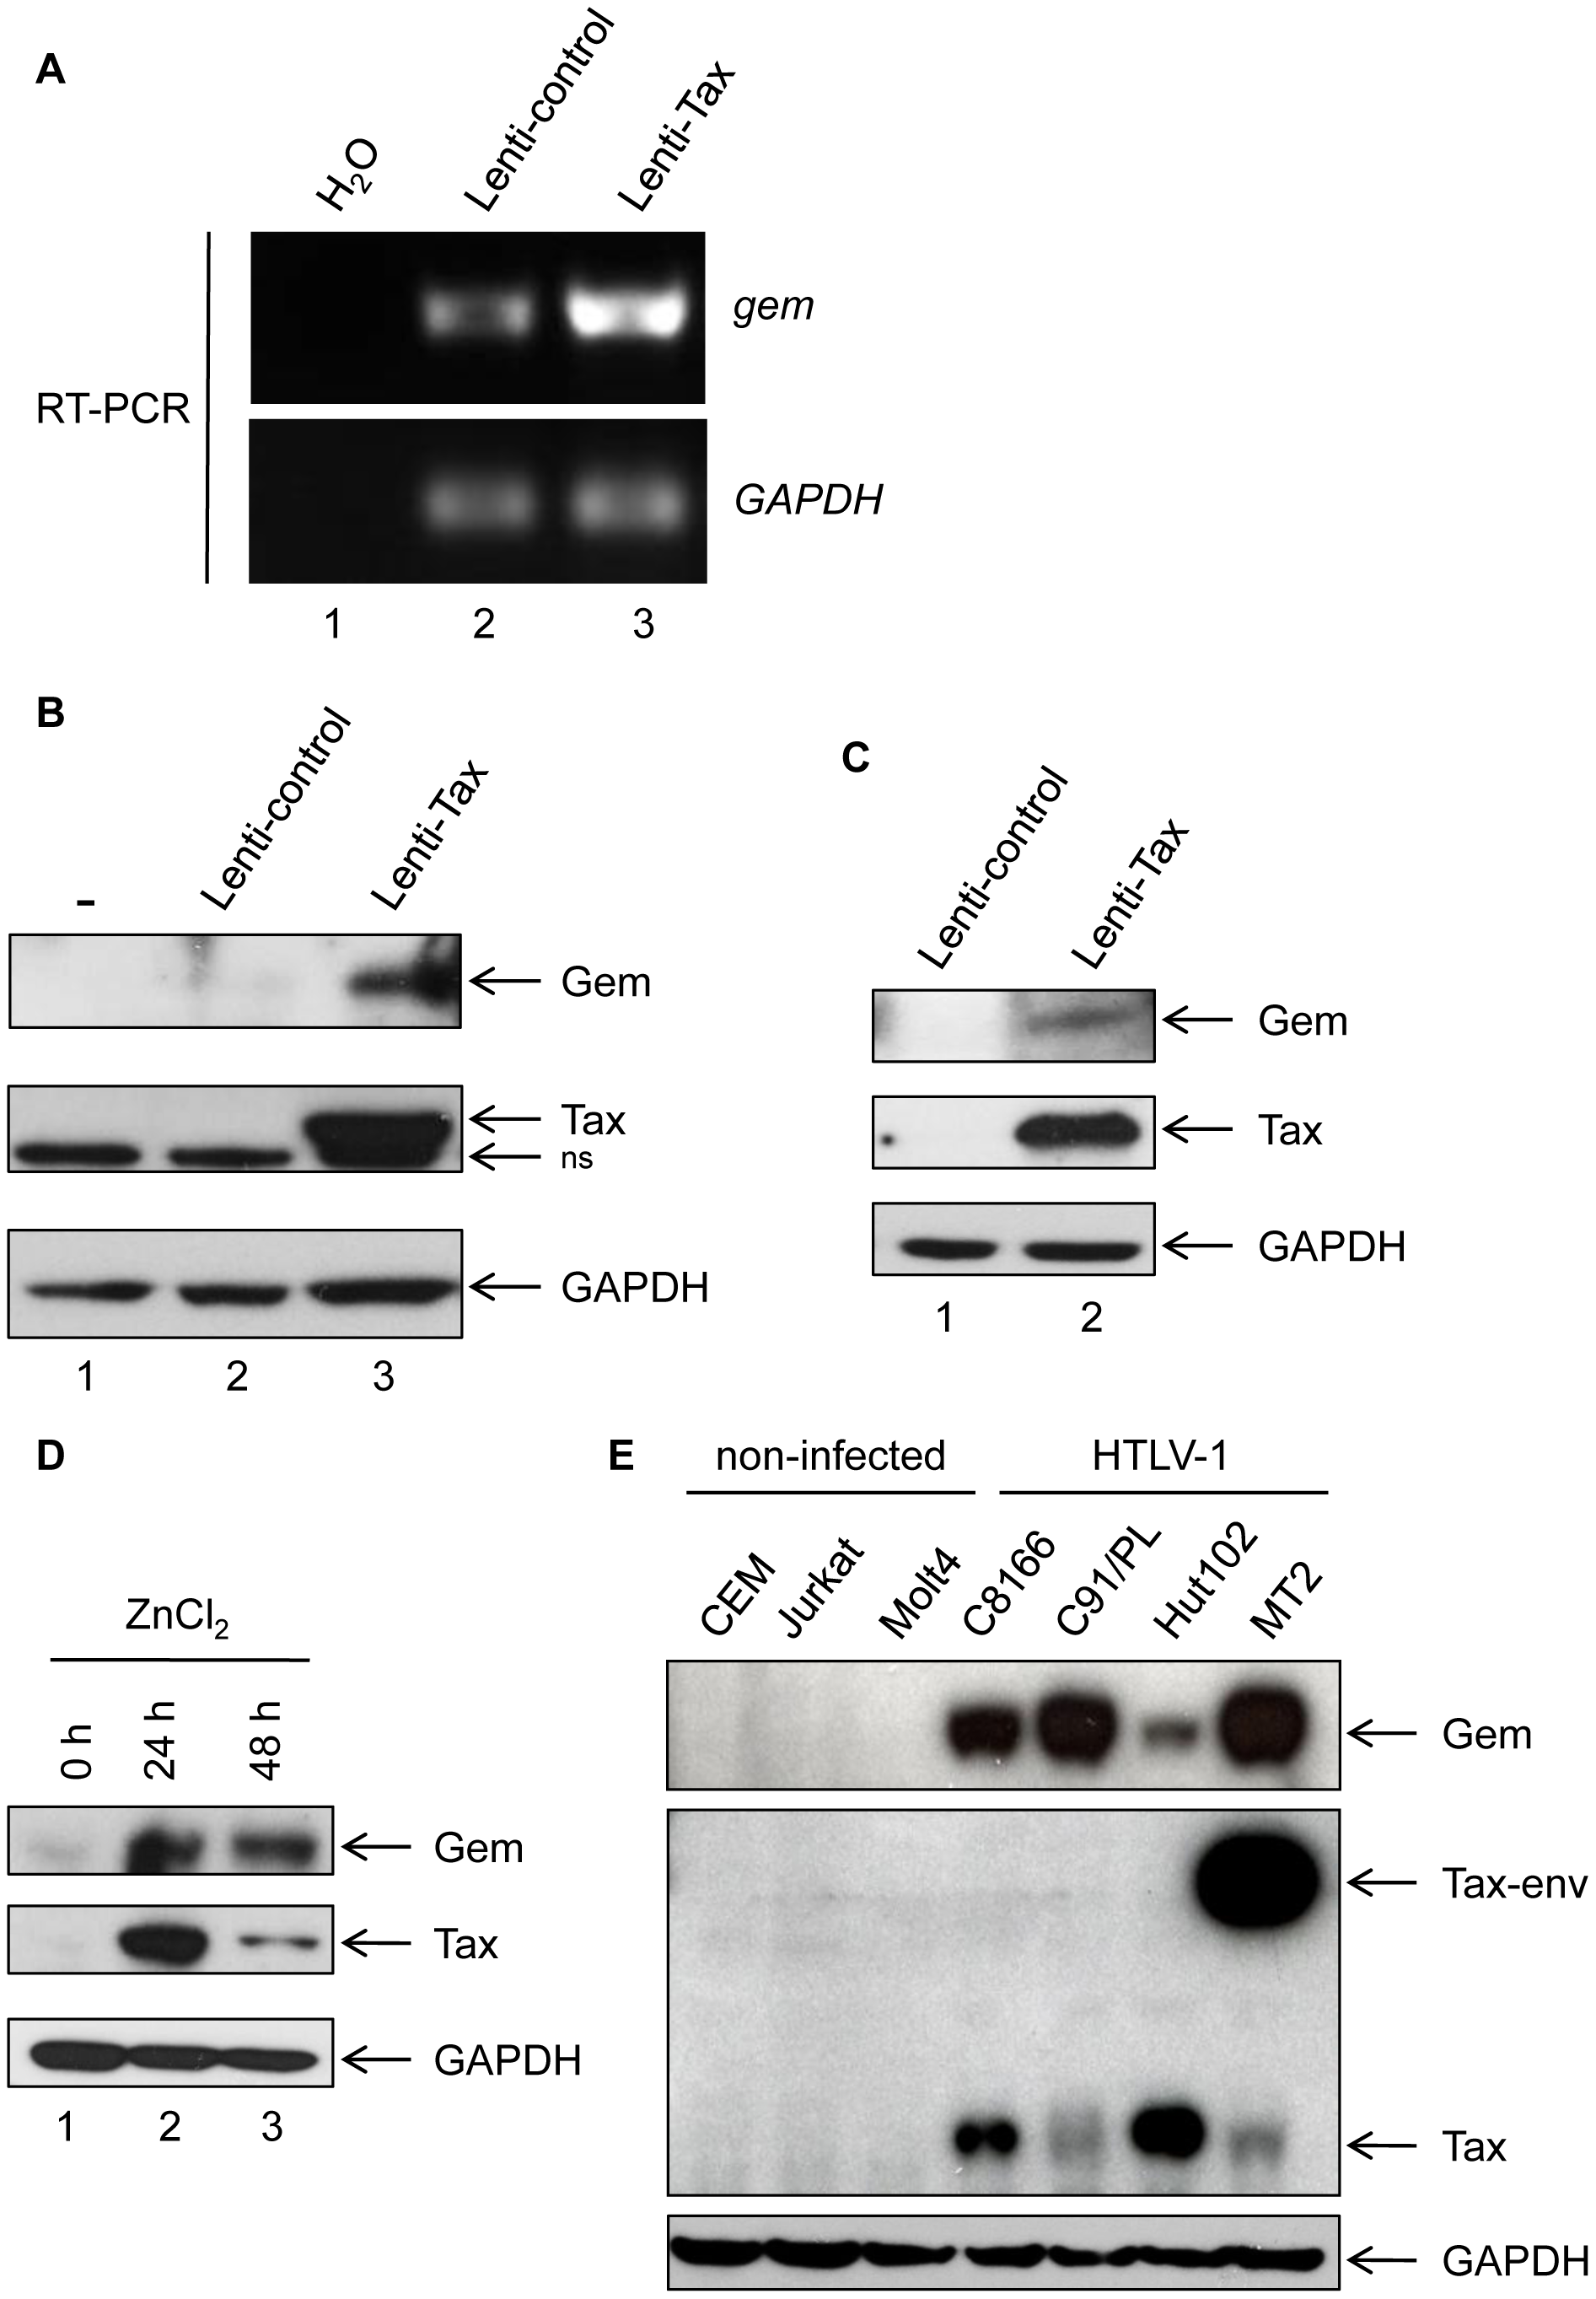 Gem is overexpressed in T- and non-T-Tax-expressing cells as well as in HTLV-1 infected cells.